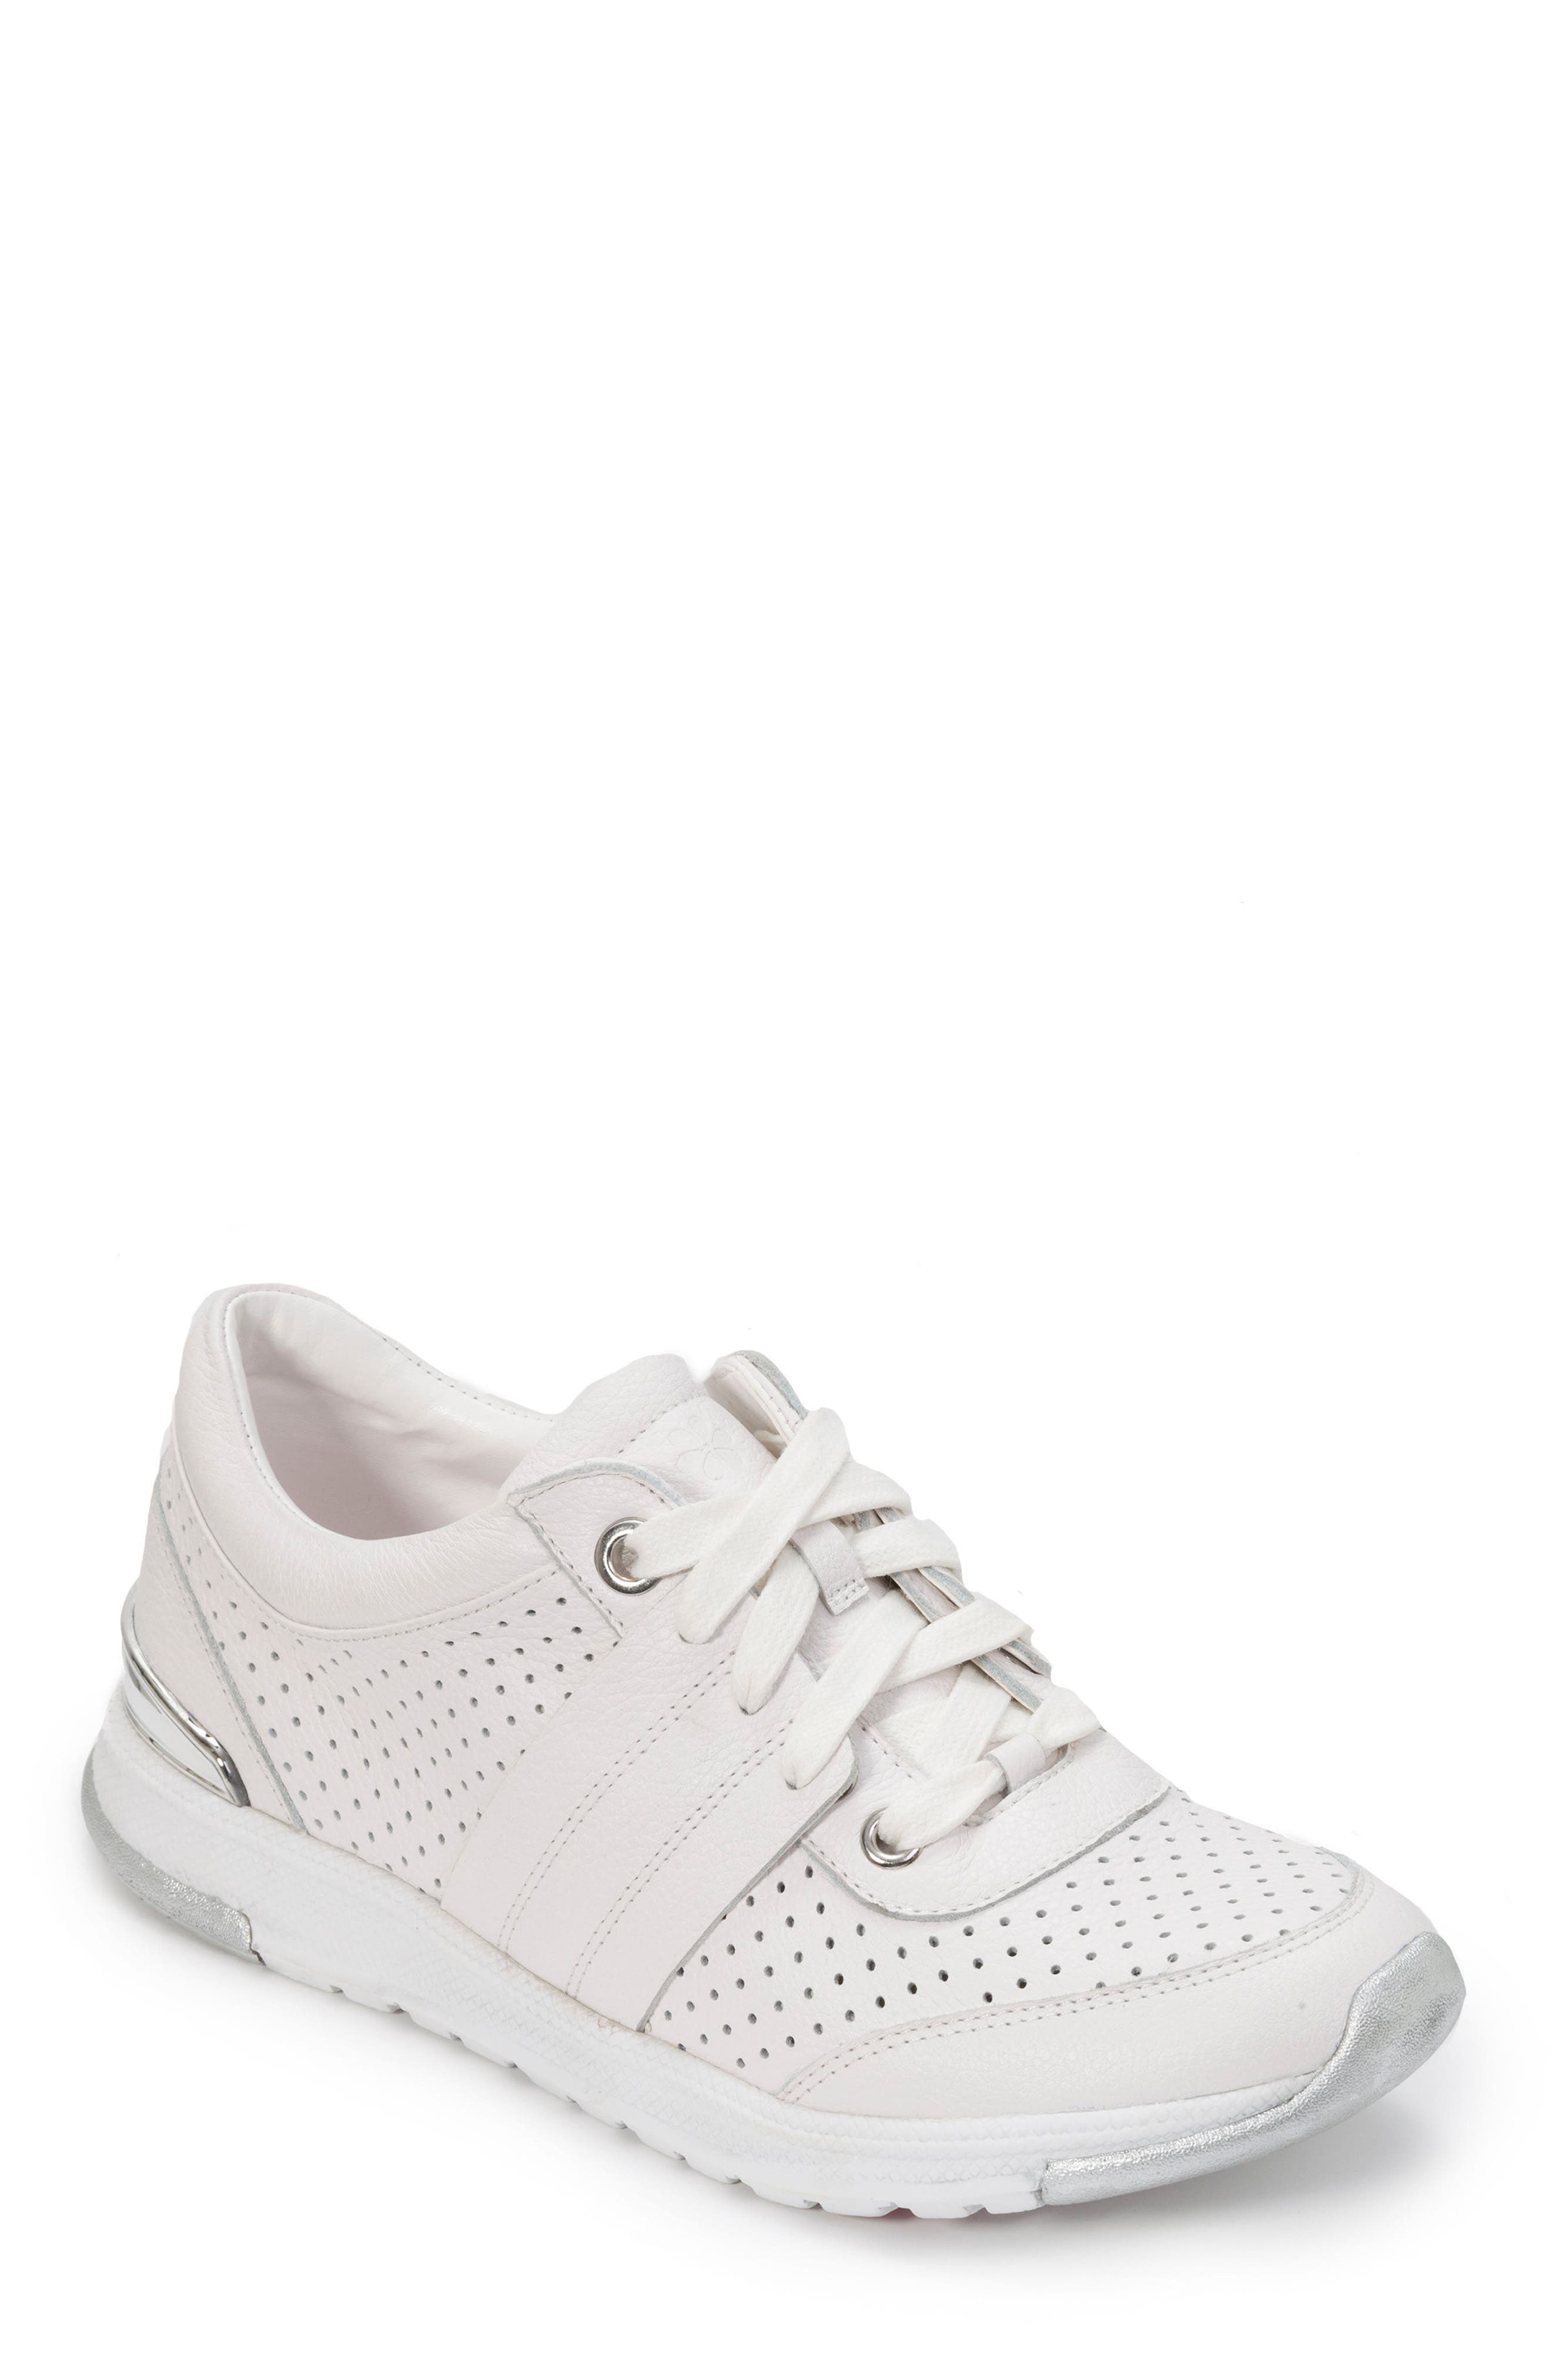 FOOT PETALS Bea Sneaker, Main, color, WHITE LEATHER